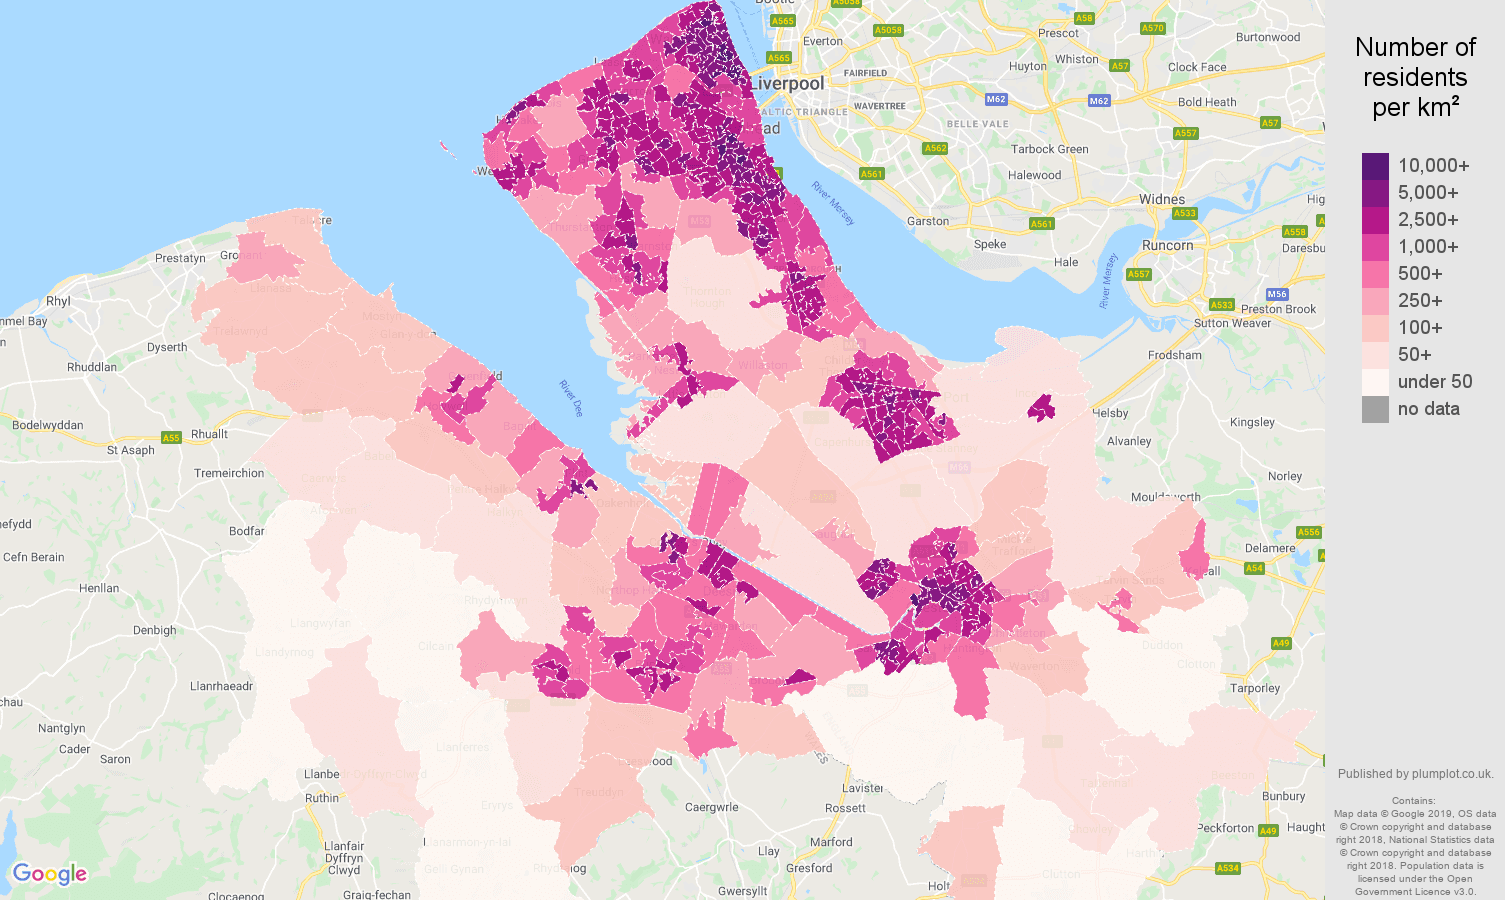 Chester population density map